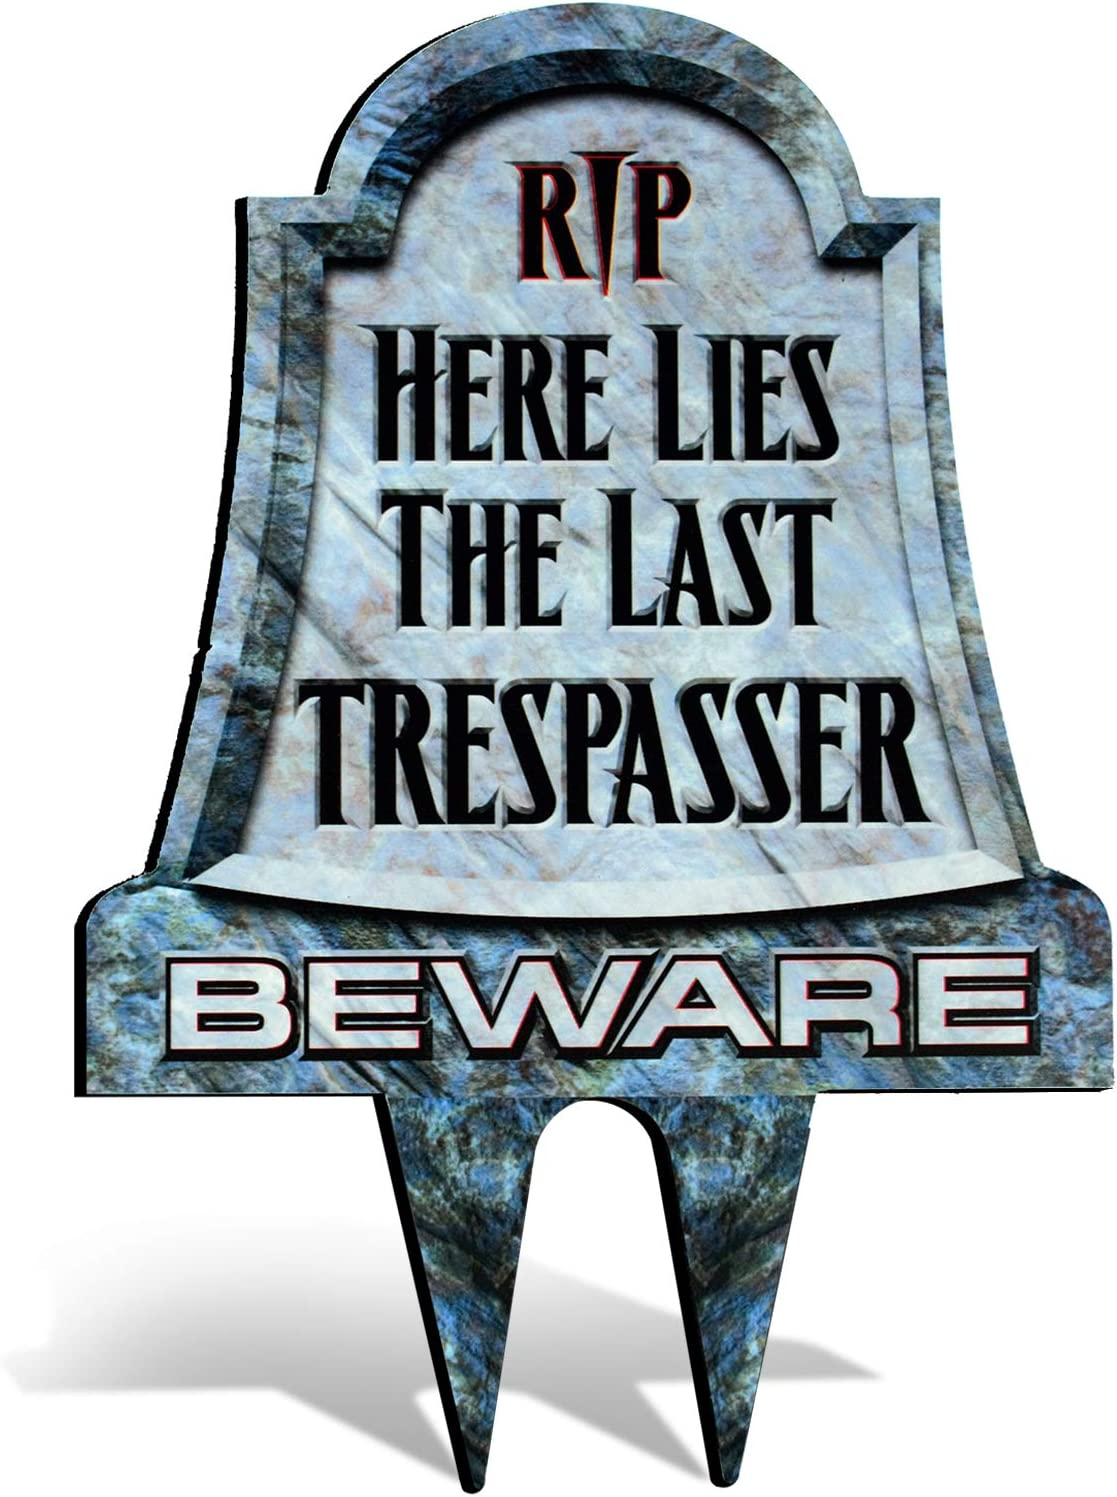 Bigtime Signs No Trespassing Metal Tombstone - Yard Warning for Private Property - Scary and Funny Gravestone with Easy Ground Stake Installation - Cool Graveyard Halloween Decoration - 16 x 11 Inch